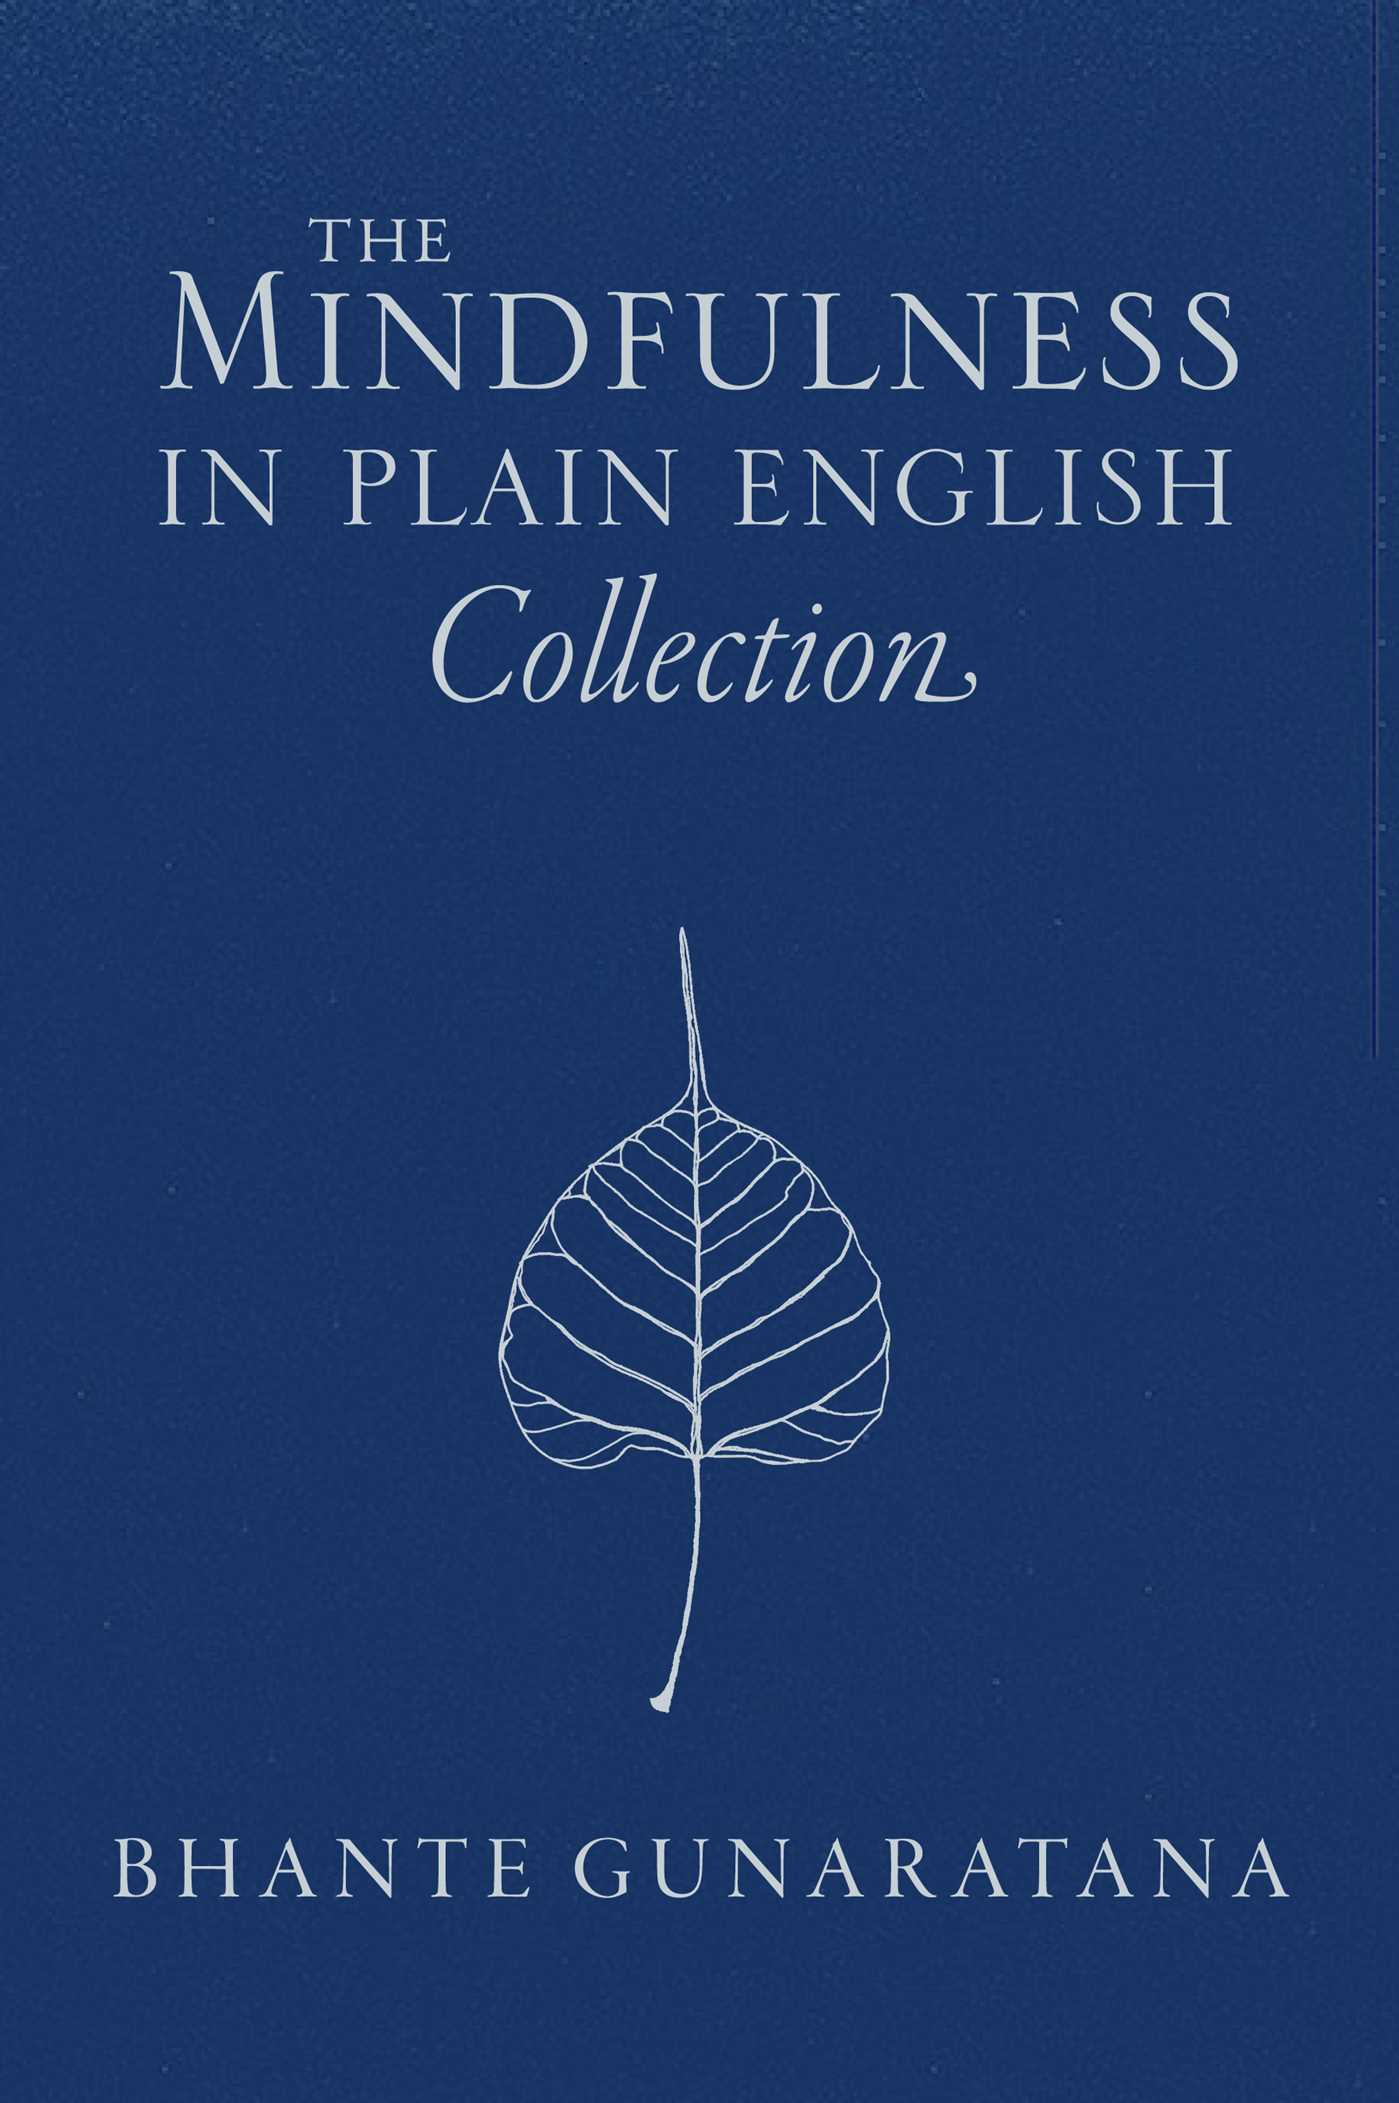 The mindfulness in plain english collection 9781614294795 hr